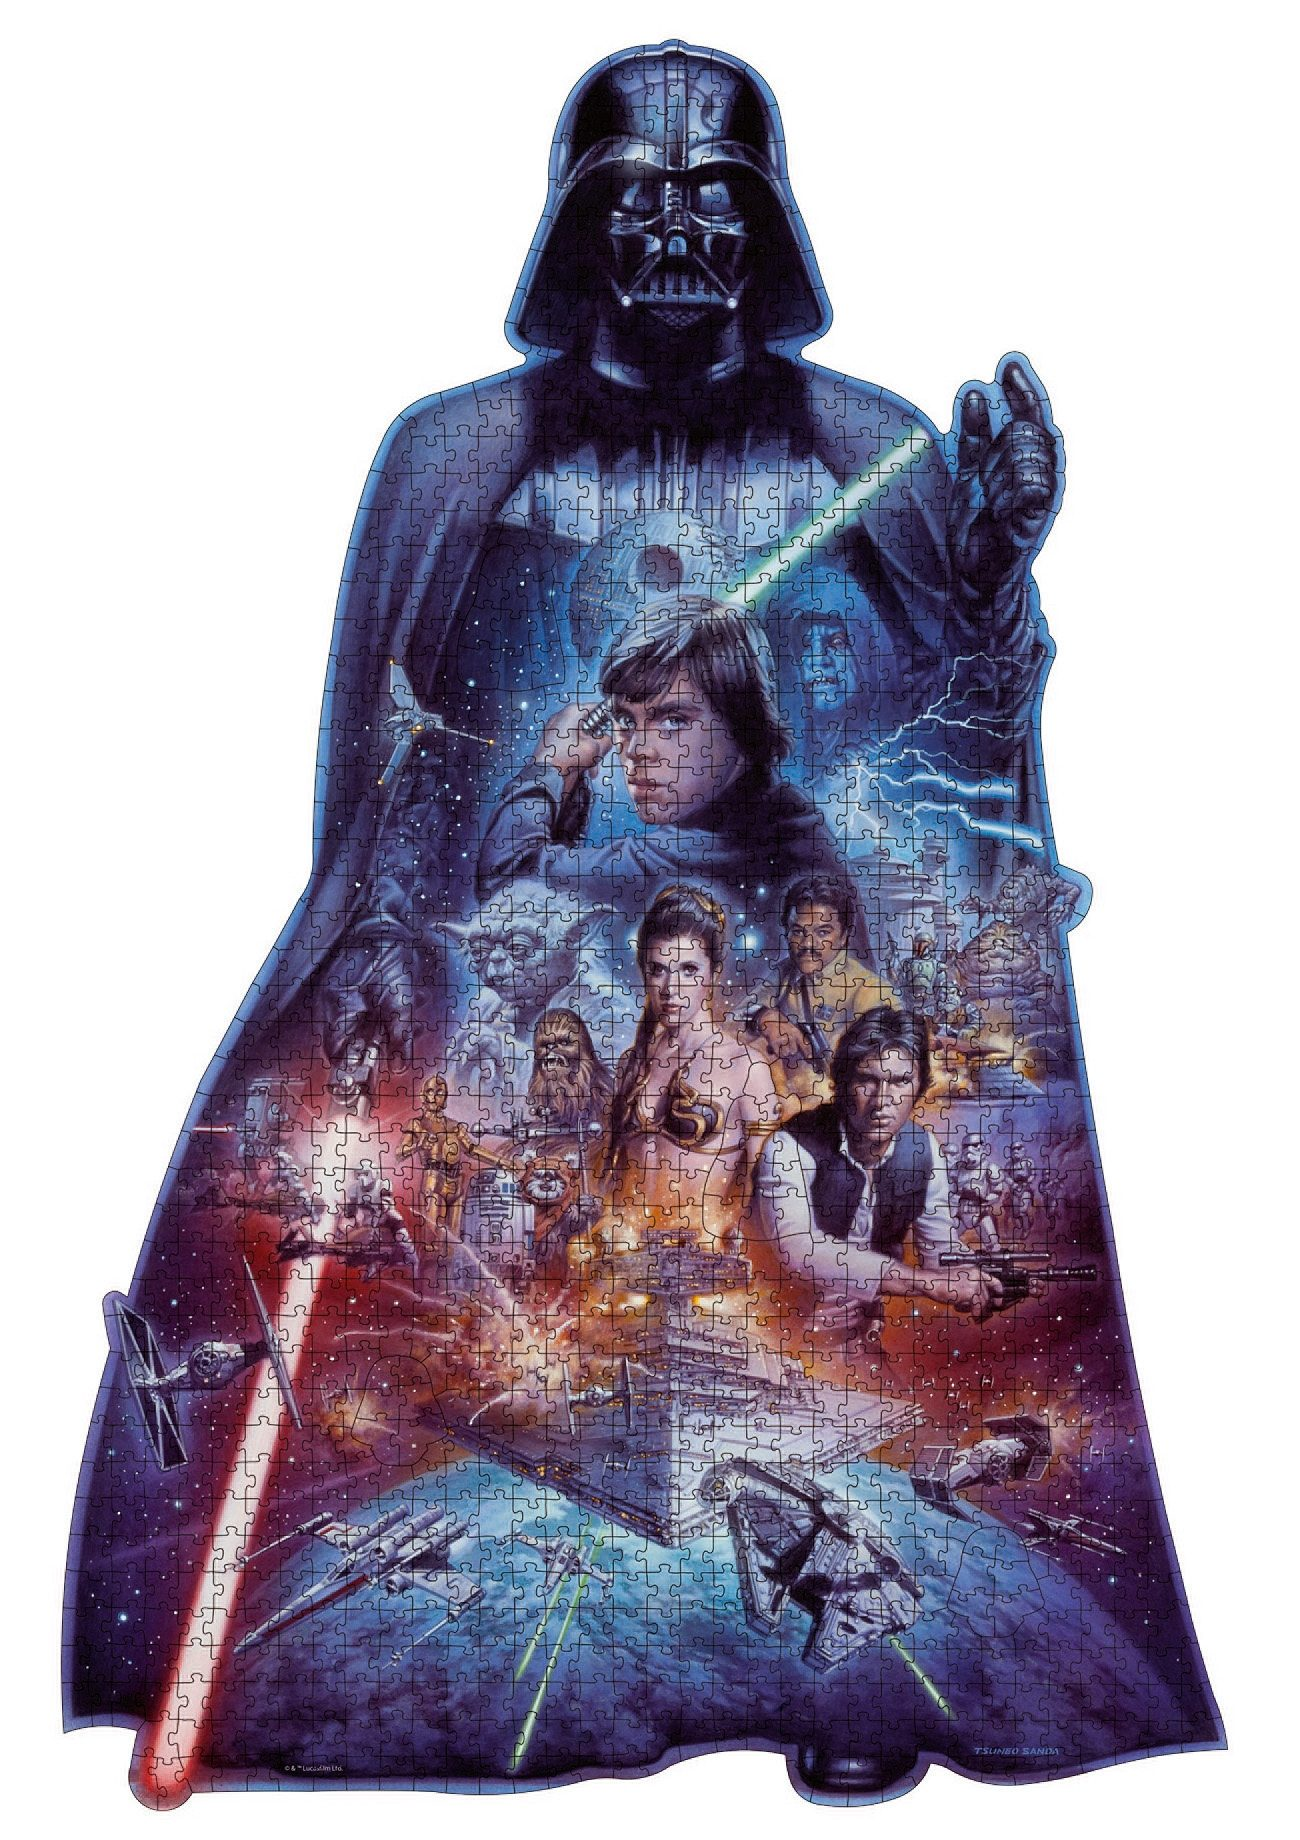 Ravensburger Puzzle, »Silhouette - Darth Vader«